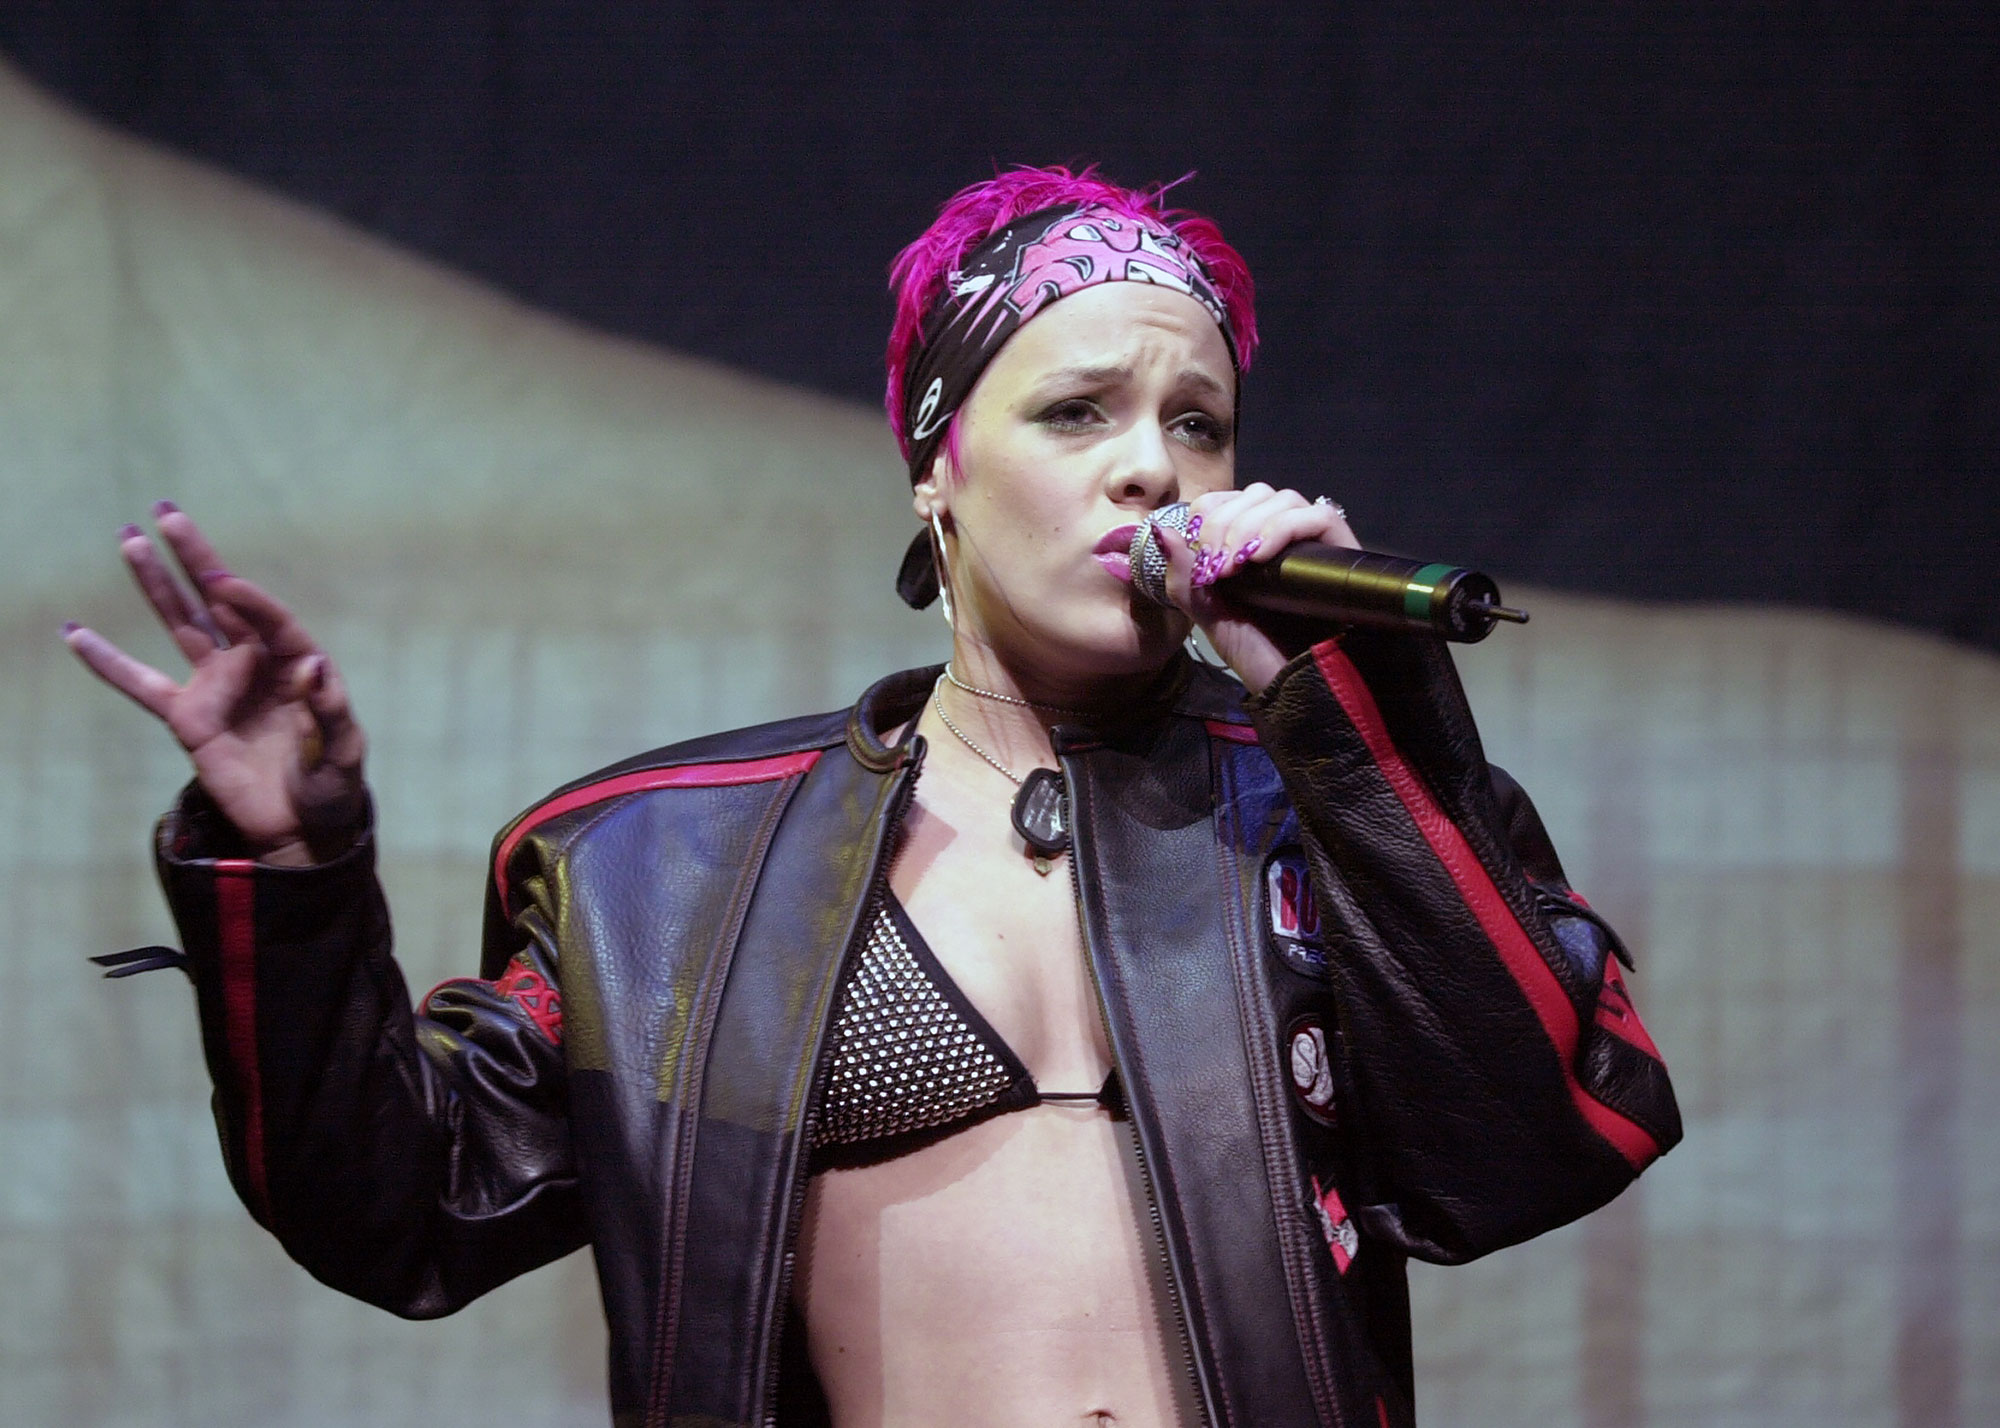 R&B-pop singer Pink onstage at Madison Square Garden. She wa